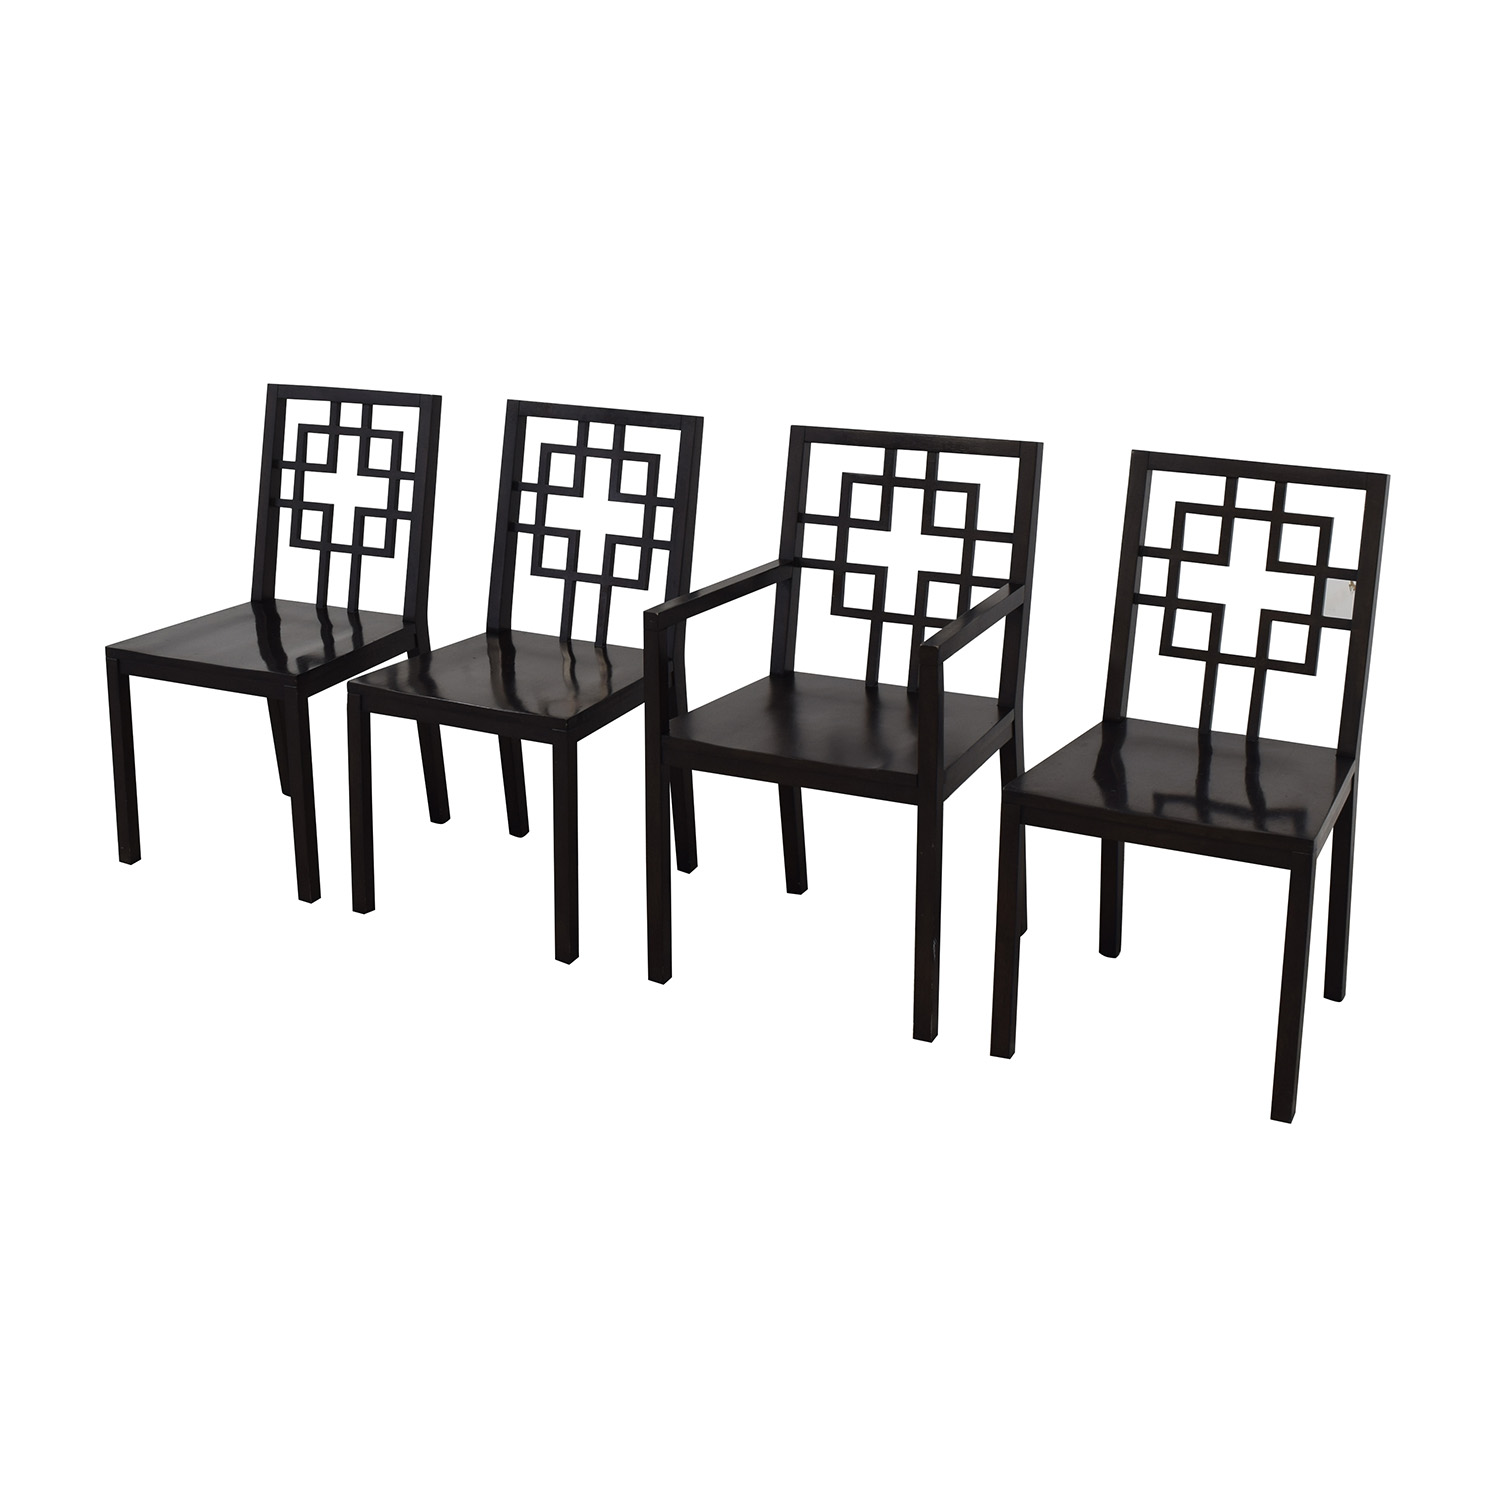 West Elm West Elm Overlapping Squares Chairs ma